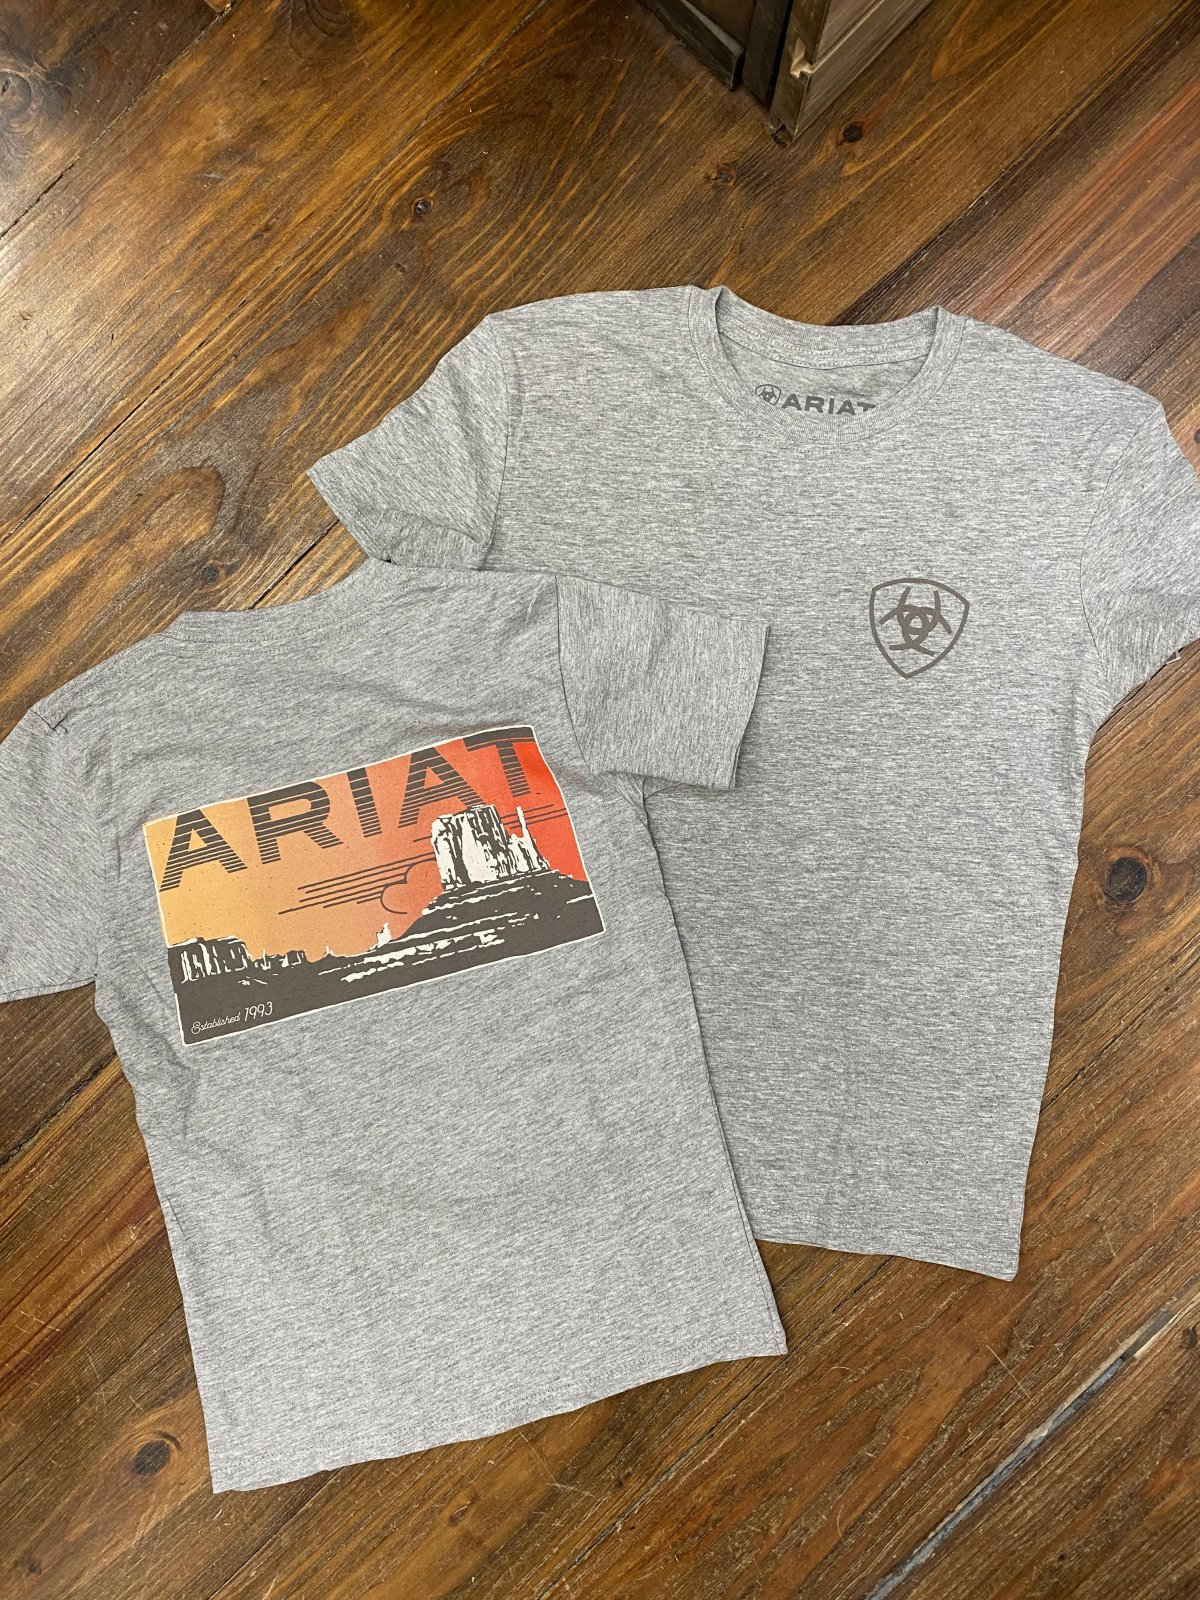 Ariat Untamable T-Shirt from Ariat